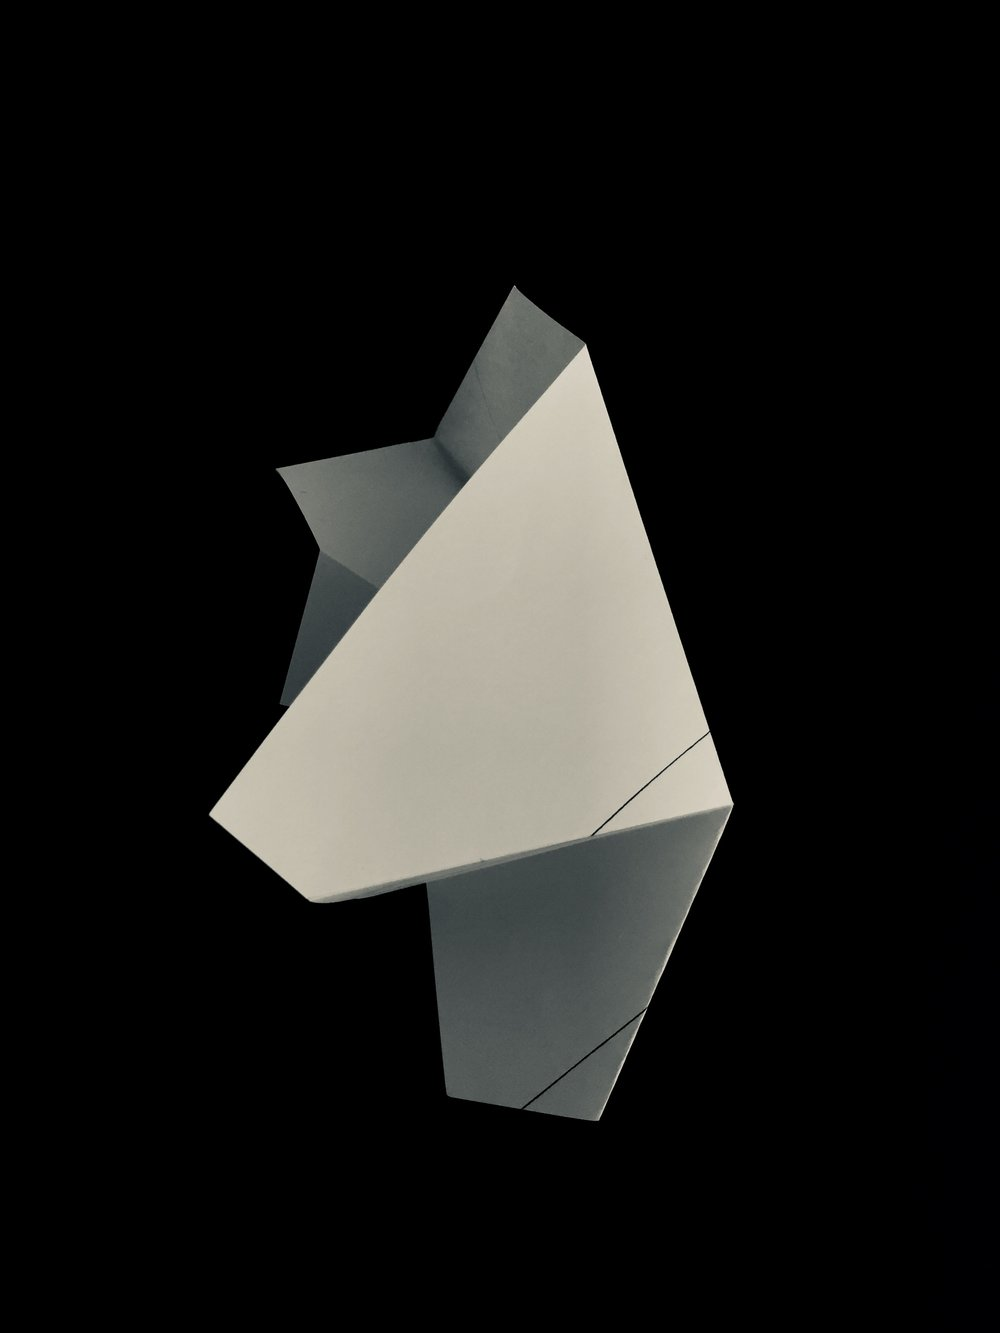 unresolved objects - 2017 : in considering Richards Feynman's work with geometrical mathematical structures these constructed objects make references of their digital simulations which may be expressed through Delaunay triangulations. They are a translation of abstracted image-objects that might manifest themselves in real time through 3D scanning and algorithmic shape retrieval database systems.